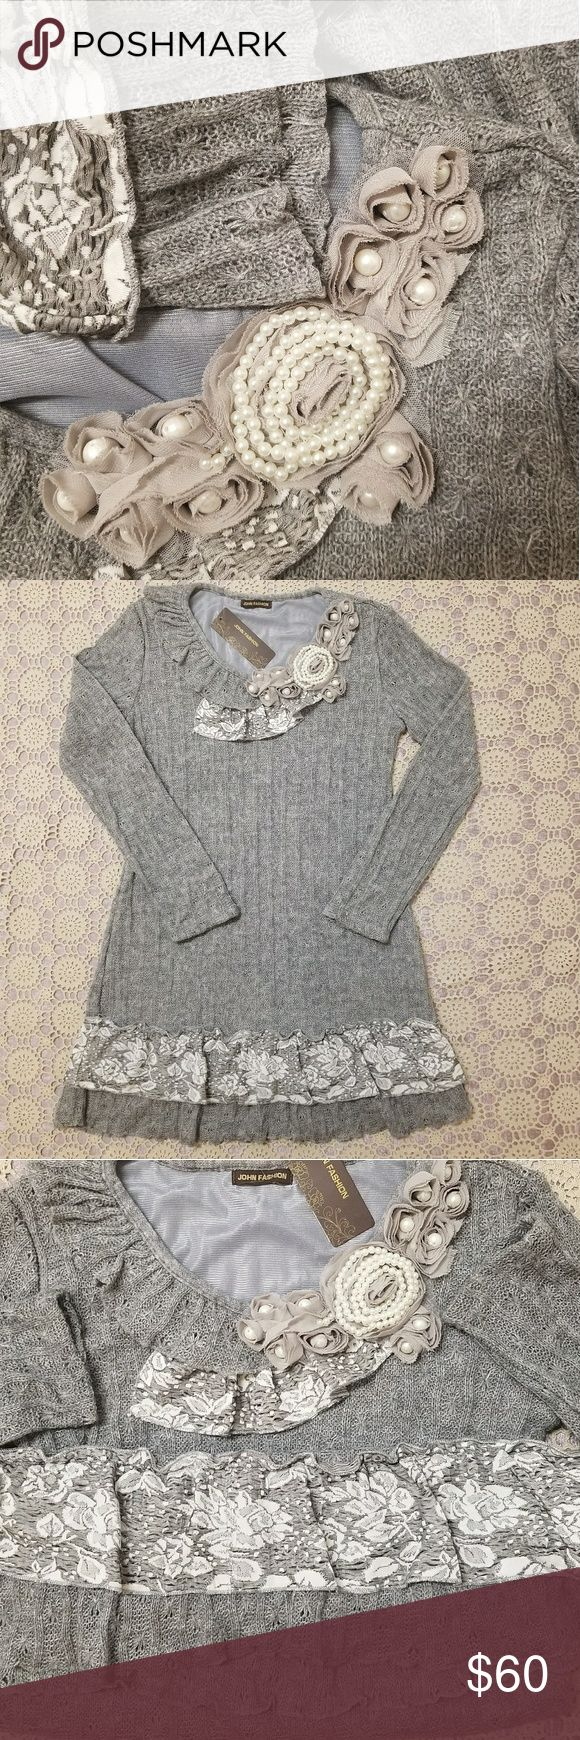 """Wool Blend sweater dress/ tunic BOHO Chic style. NWT! Wool Blend sweater dress from John Fashion. Dress is in Boho Chic style, in gray colroing with different textures mixed in. Ruffle, pearl , floral detailing. Very pretty! Measurements taken while laying down flat with no stretching: Chest (armpit to armpit side to side) 17.5"""" Length (top of the shoulder down to the bottom) 33"""" Sleeve length (measured from place where stitched in down to the cuff) 23"""" No defects. Smoke free and pet free…"""